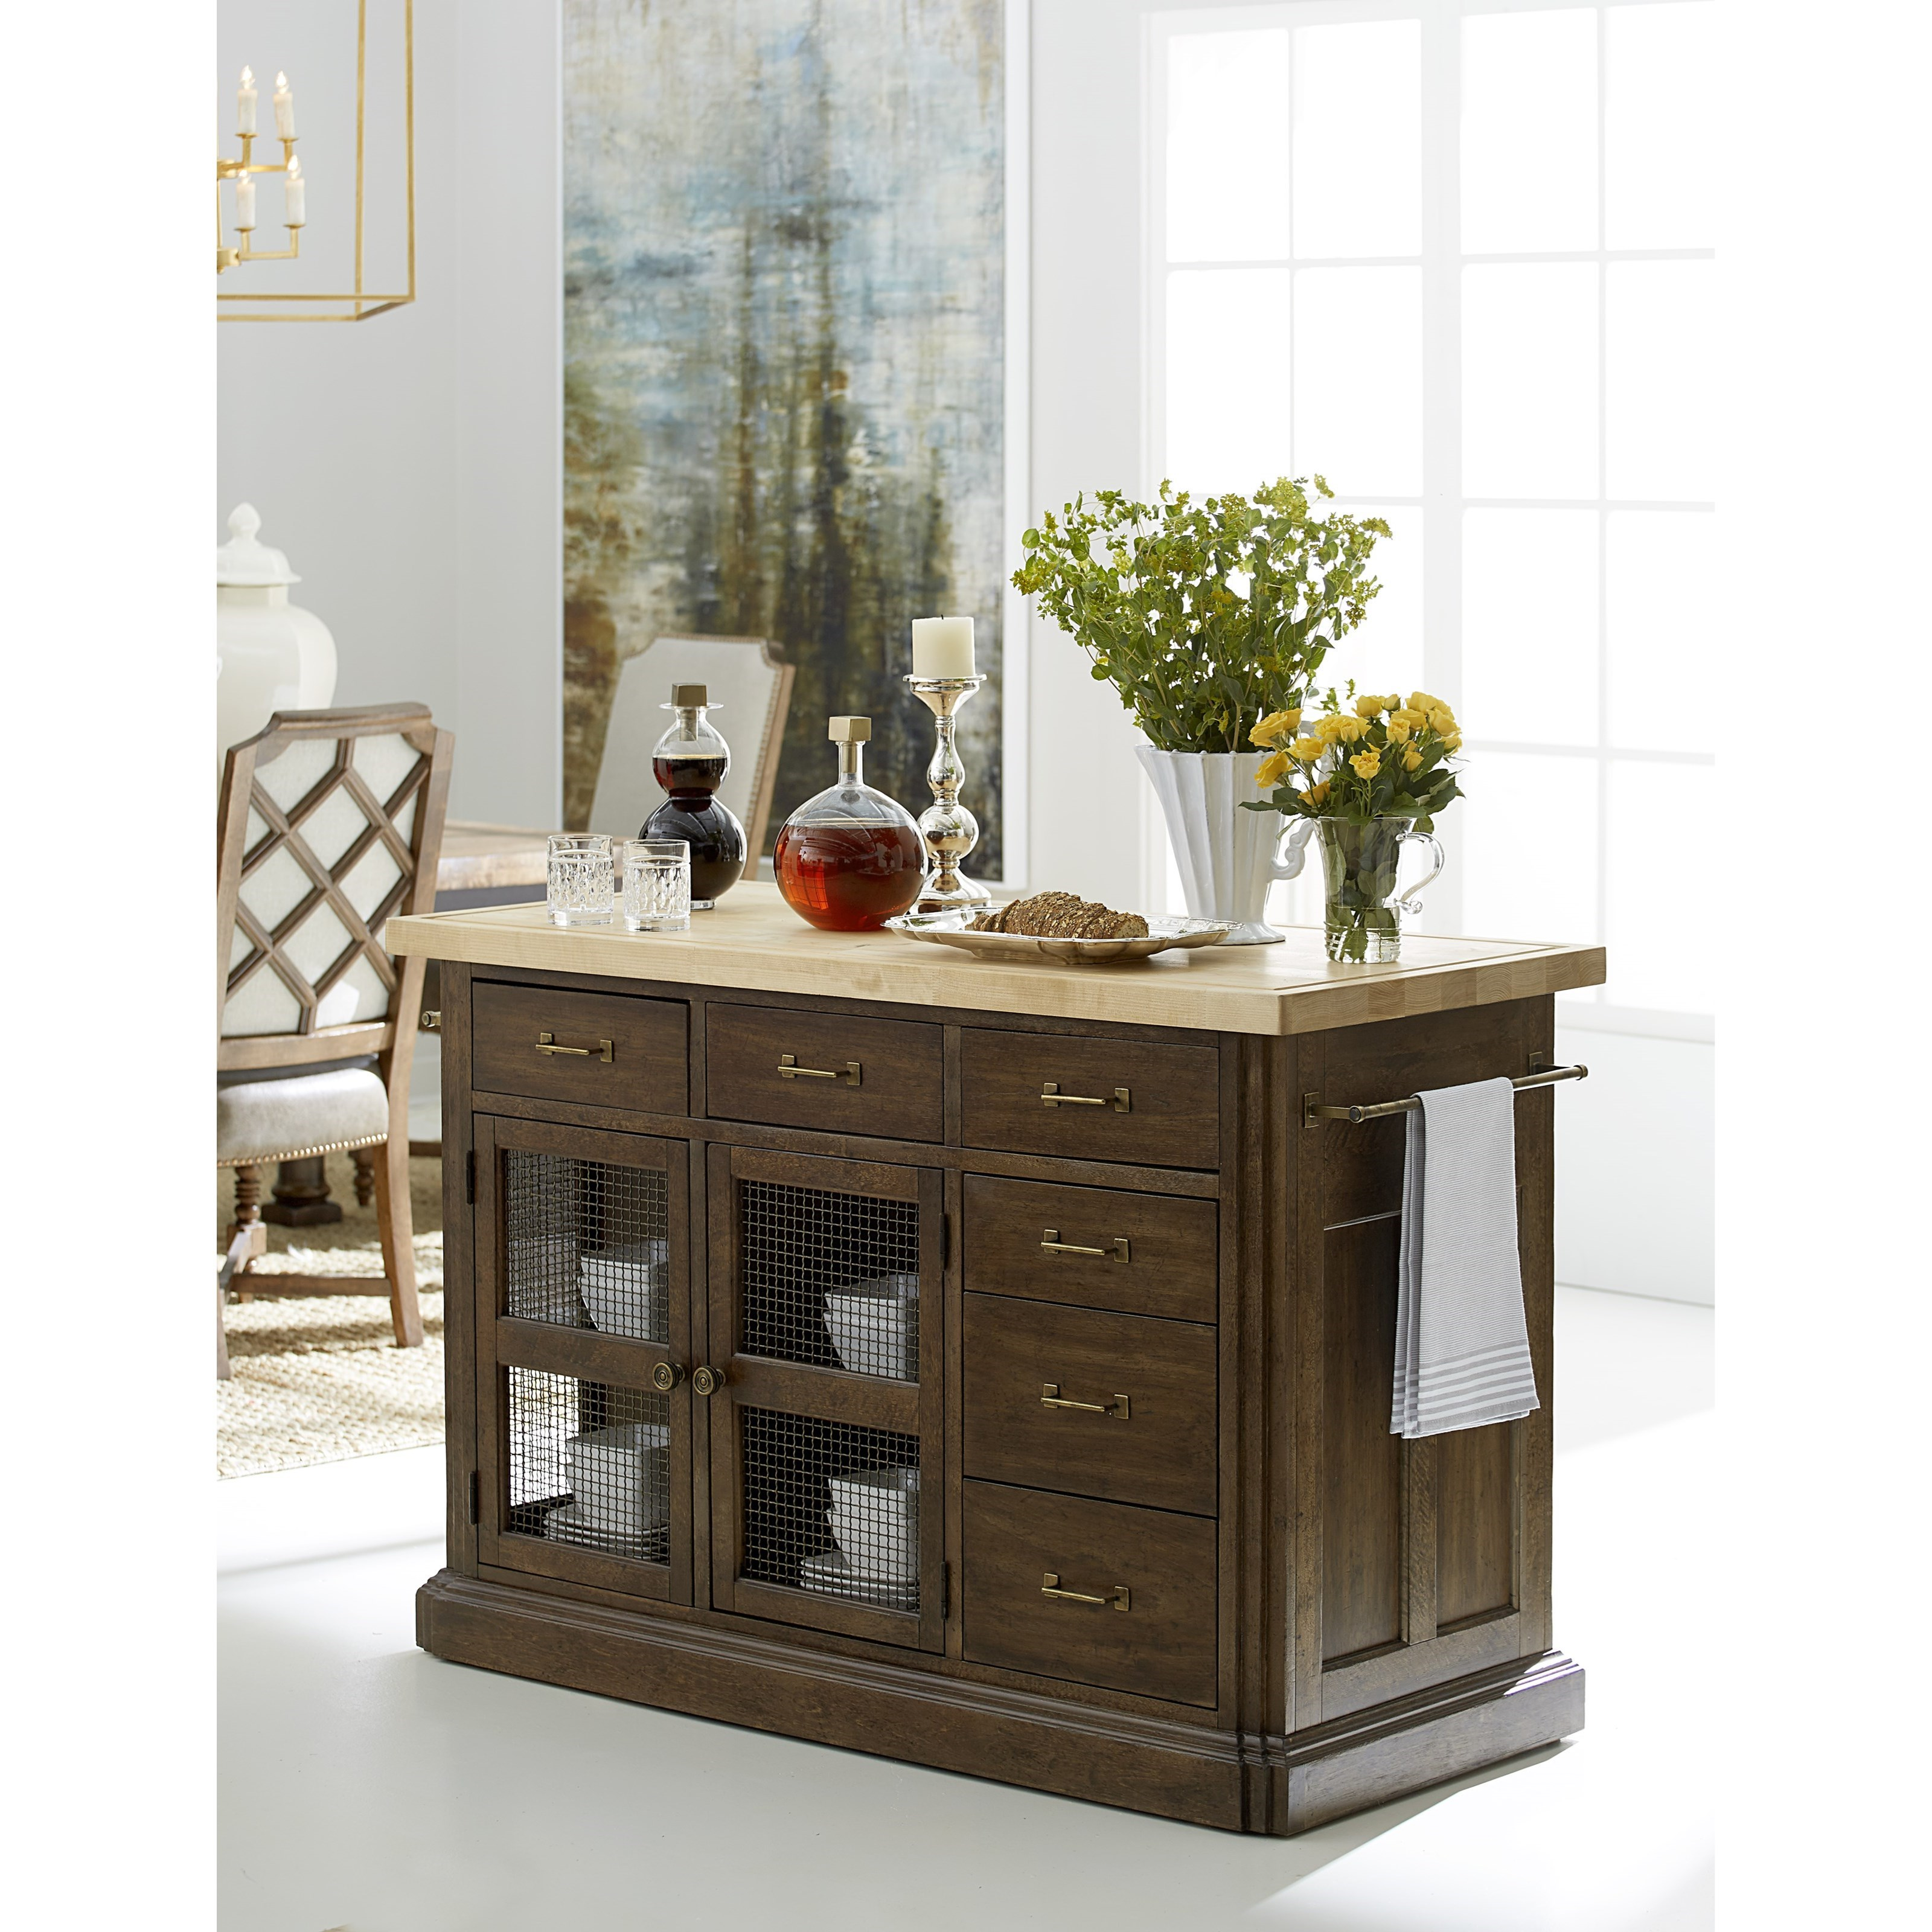 Top American Furniture Makers: A.R.T. Furniture Inc American Chapter Makers Island Bar